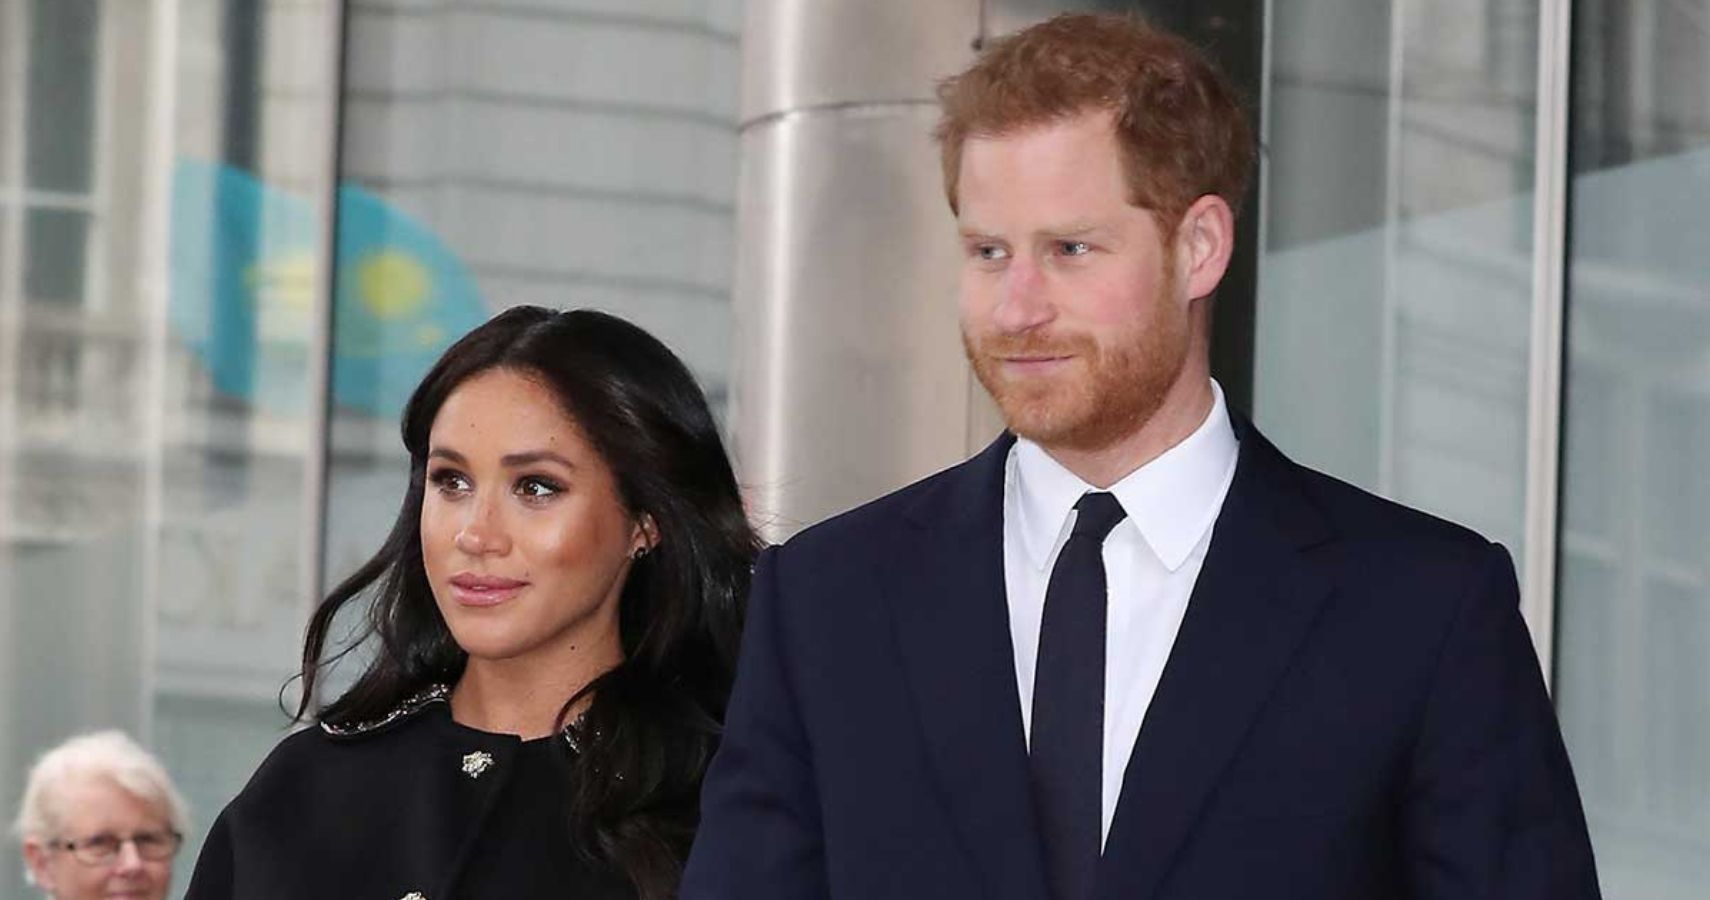 Has the Queen Really ordered Harry and Meghan to Return